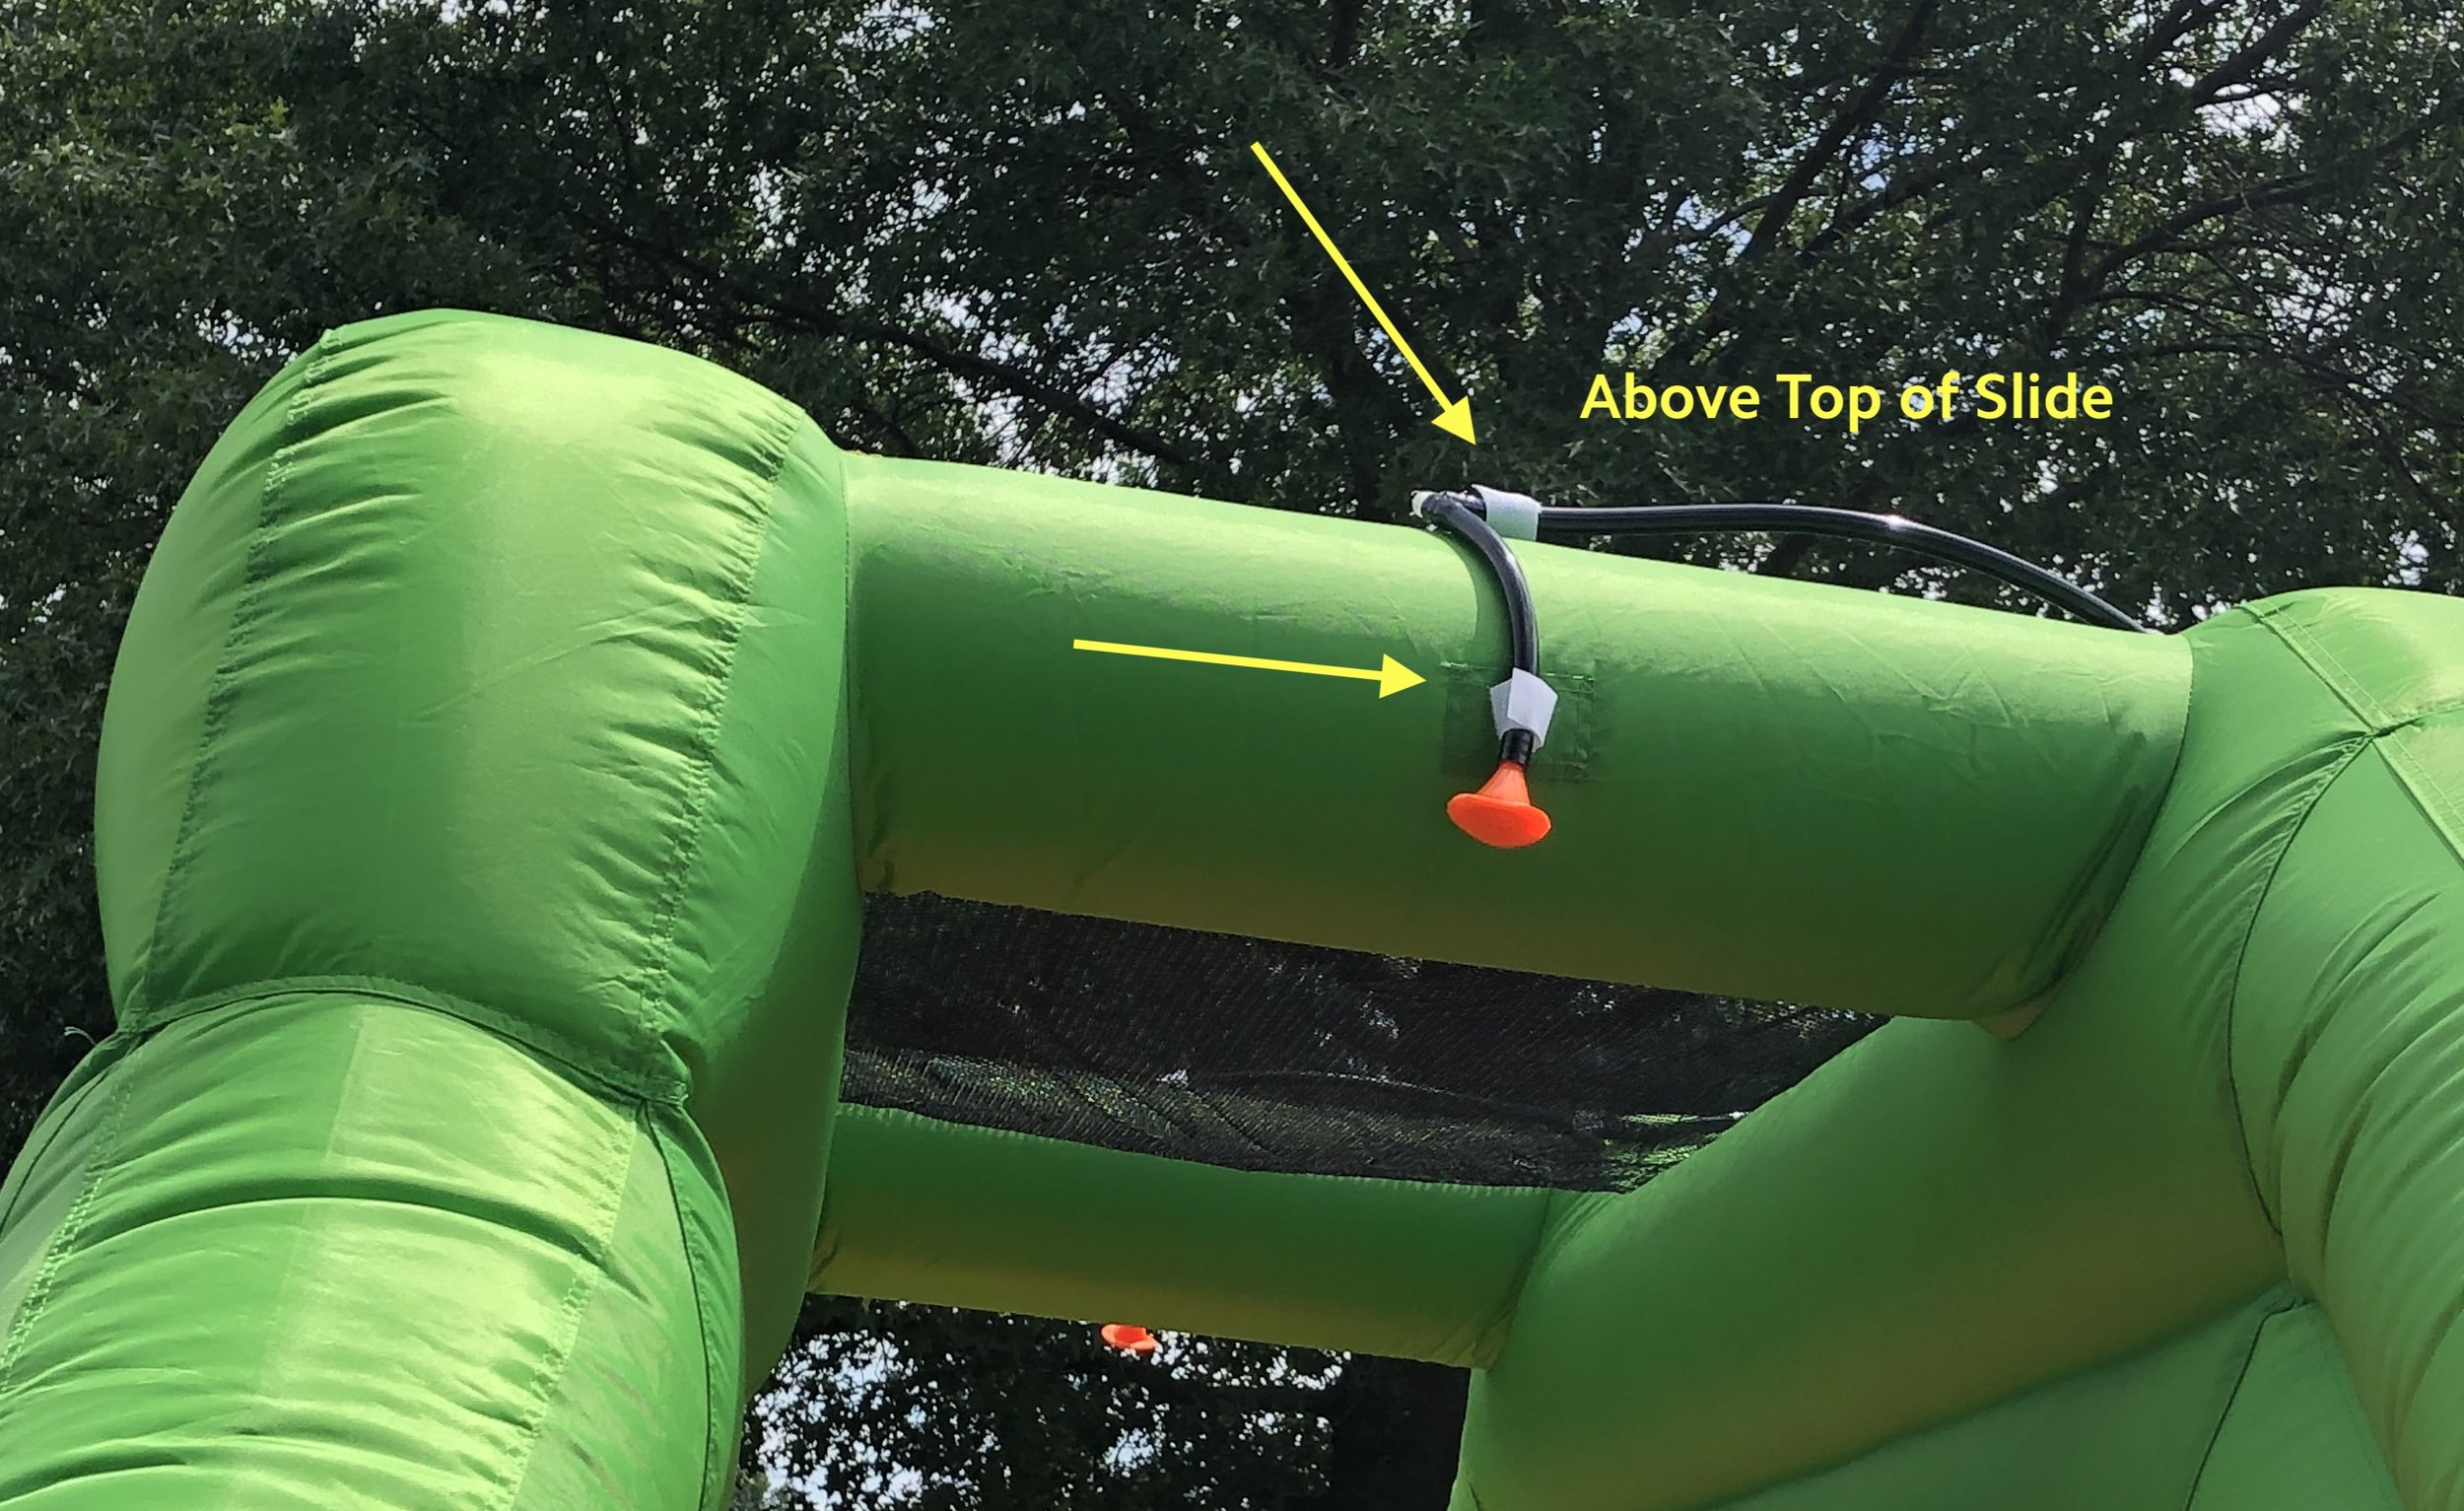 8a. Attach the sprinkler above the top of the right slide using Velcro. Secure the hose using the additional Velcro straps.